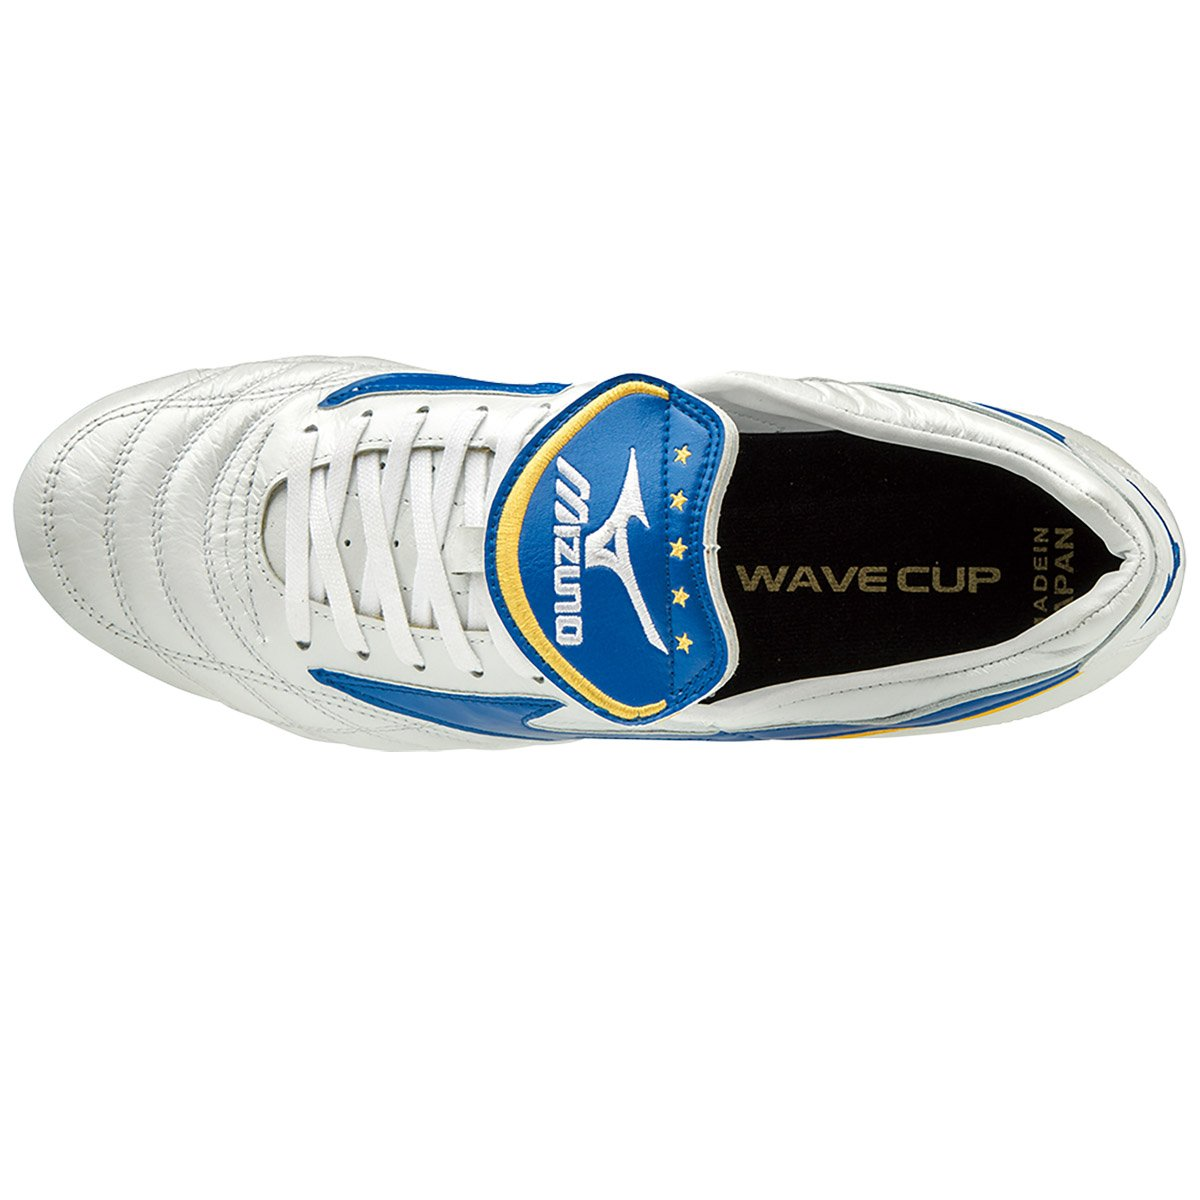 WAVE CUP LEGEND White /Wave Cup Blue /Cyber Yellow